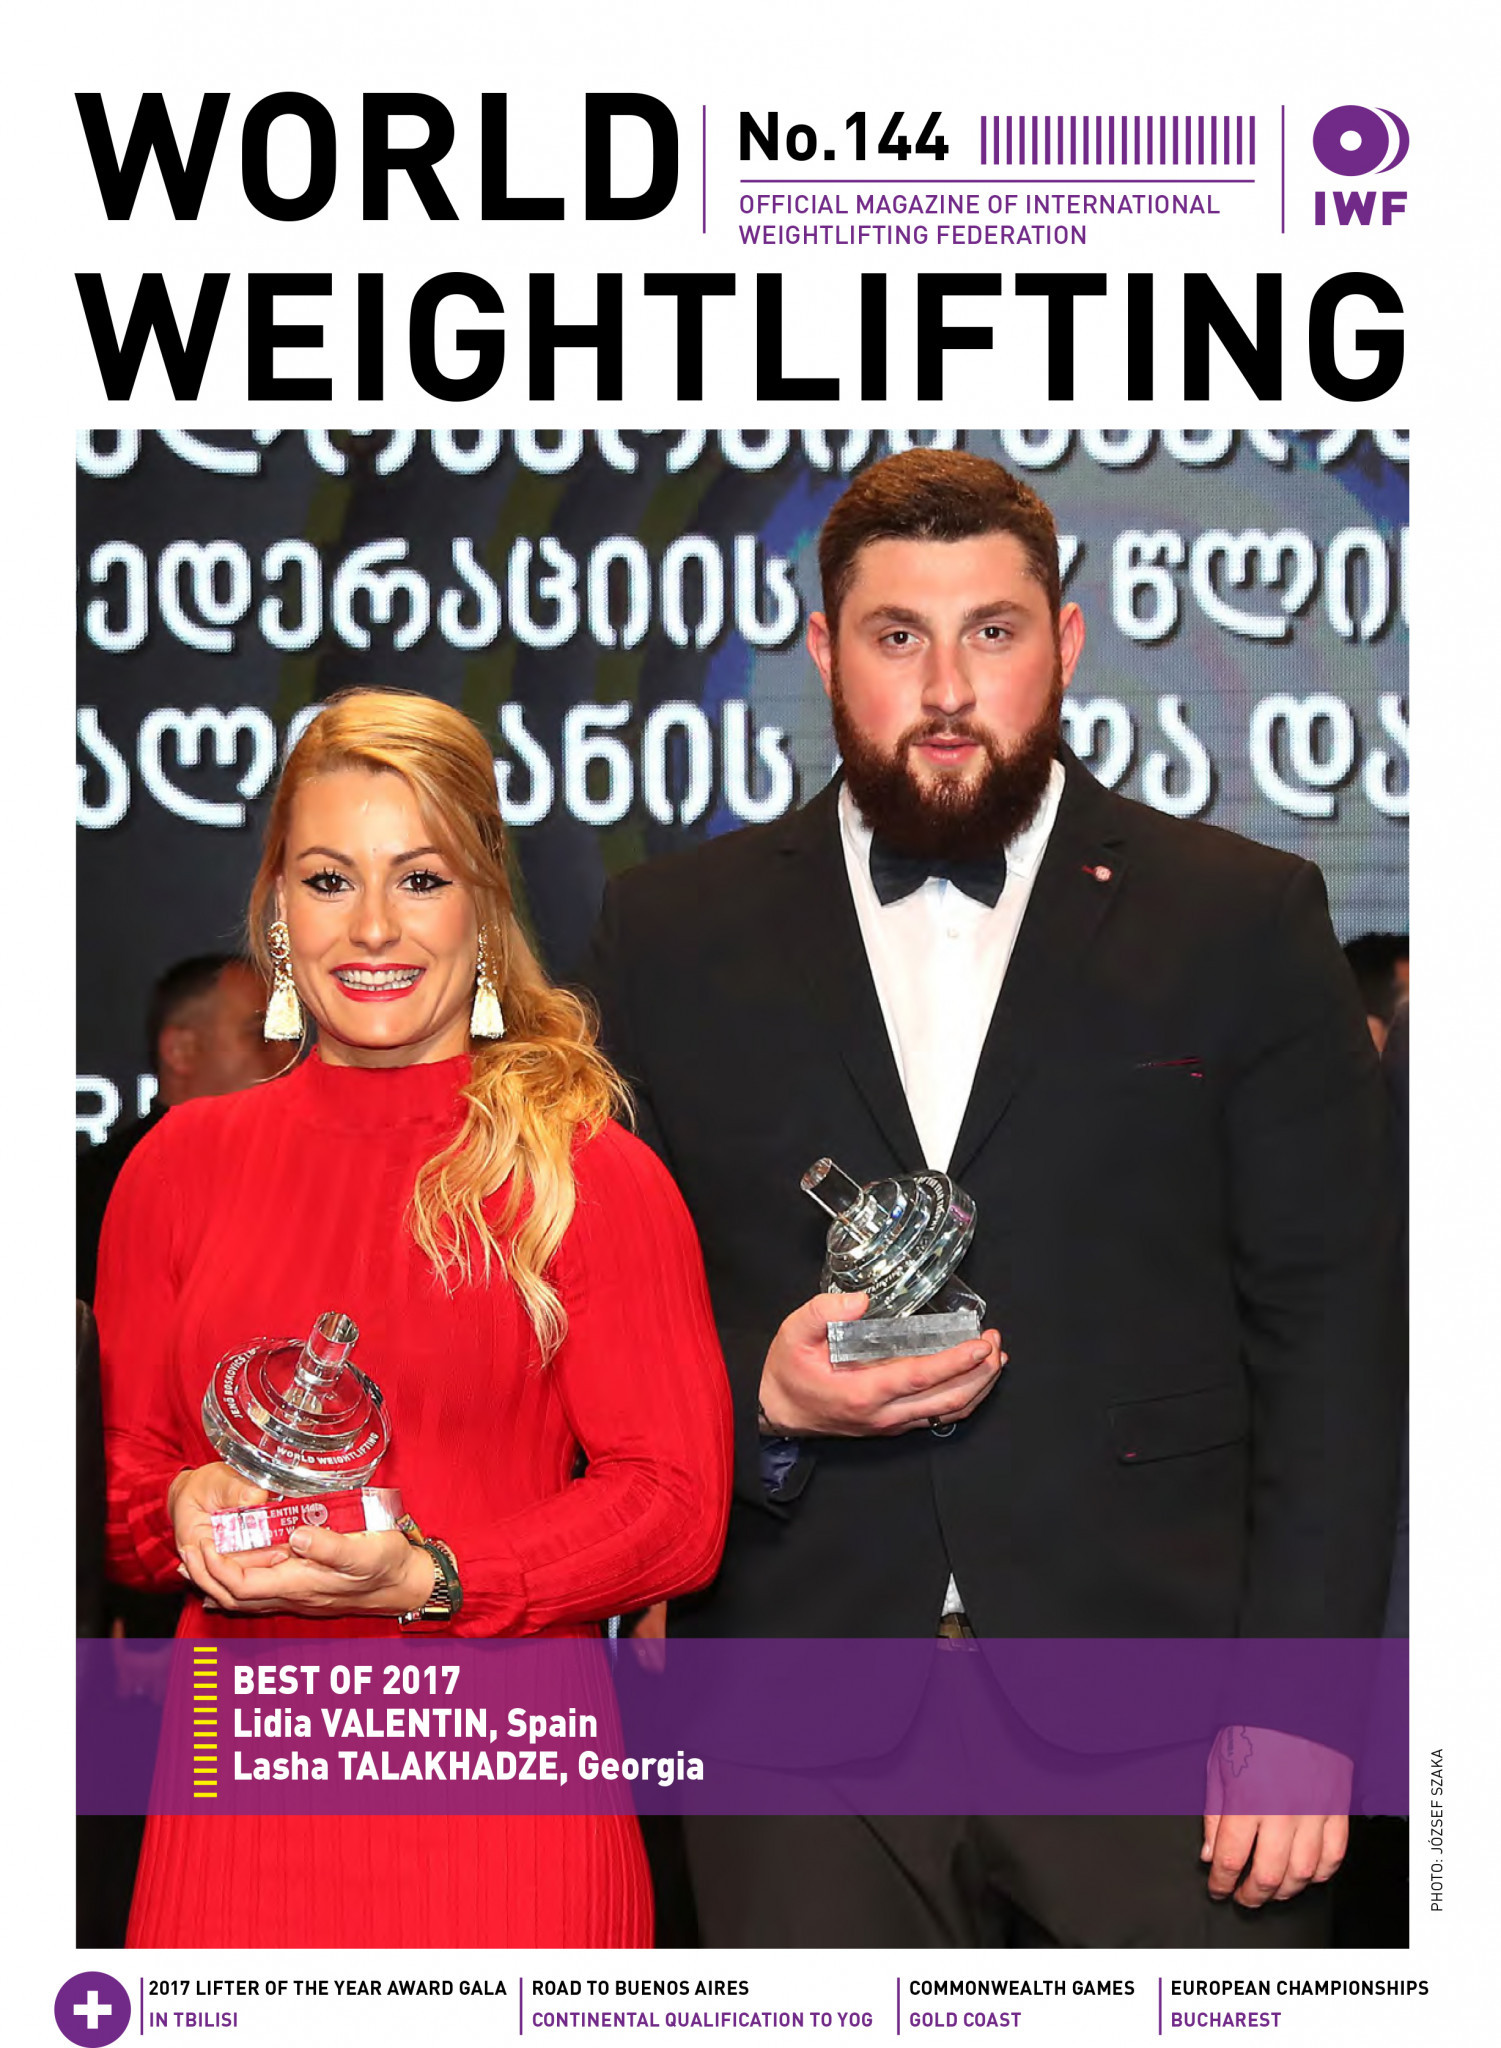 World Weightlifting Magazine No. 144